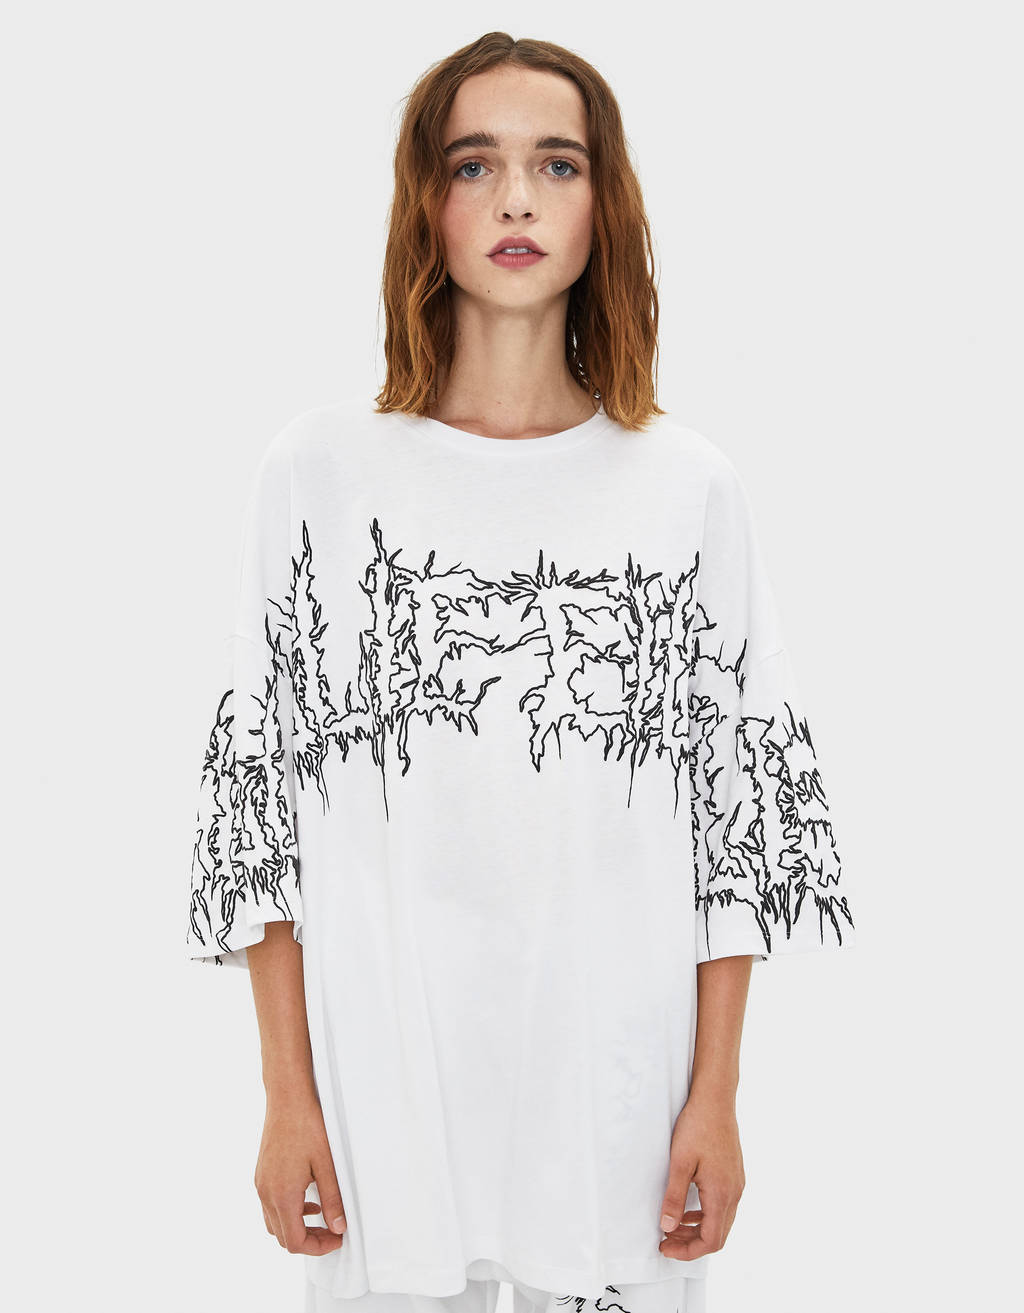 Billie Eilish x Bershka Tシャツ